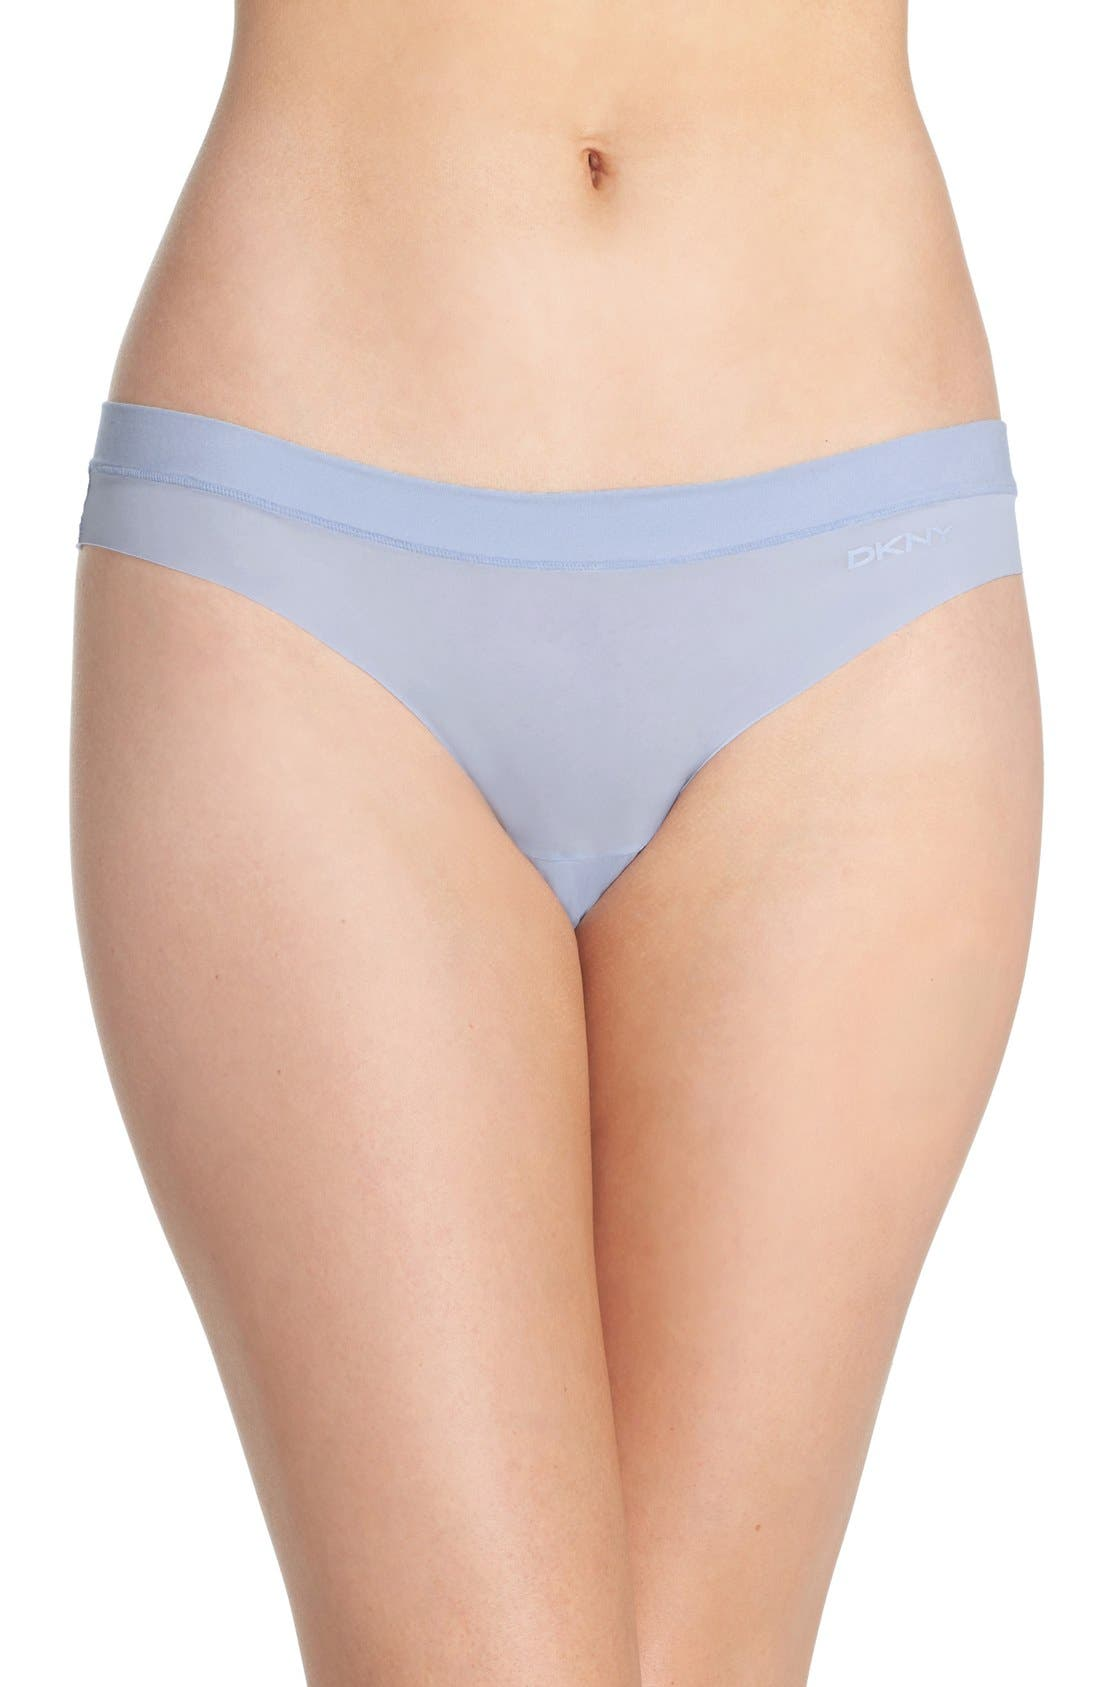 Alternate Image 1 Selected - DKNY 'Fusion' Thong (3 for $30)